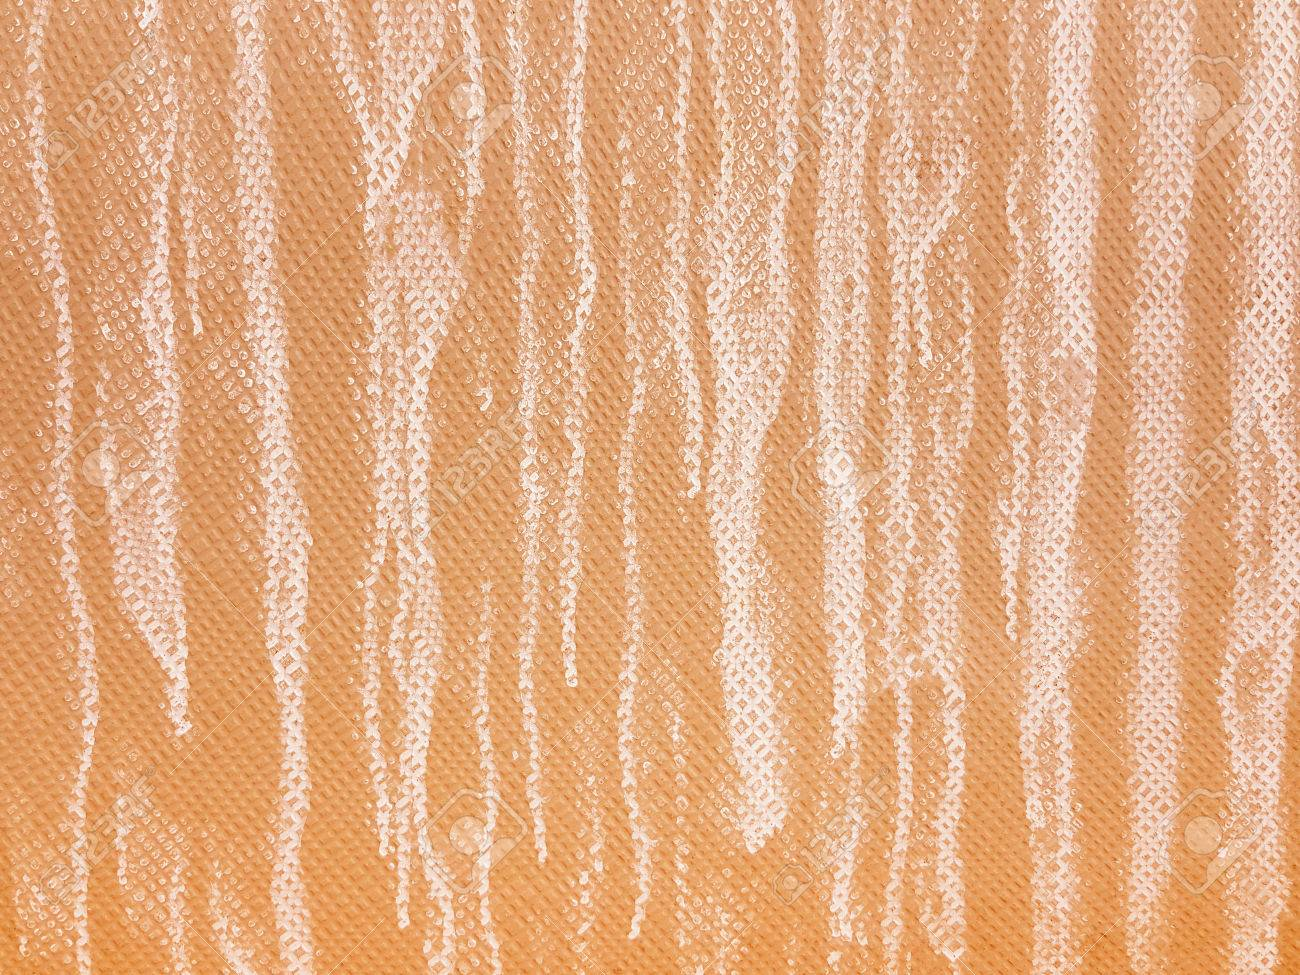 Ceramic Tile Pattern With Color Stain Is A Long Way For Texture